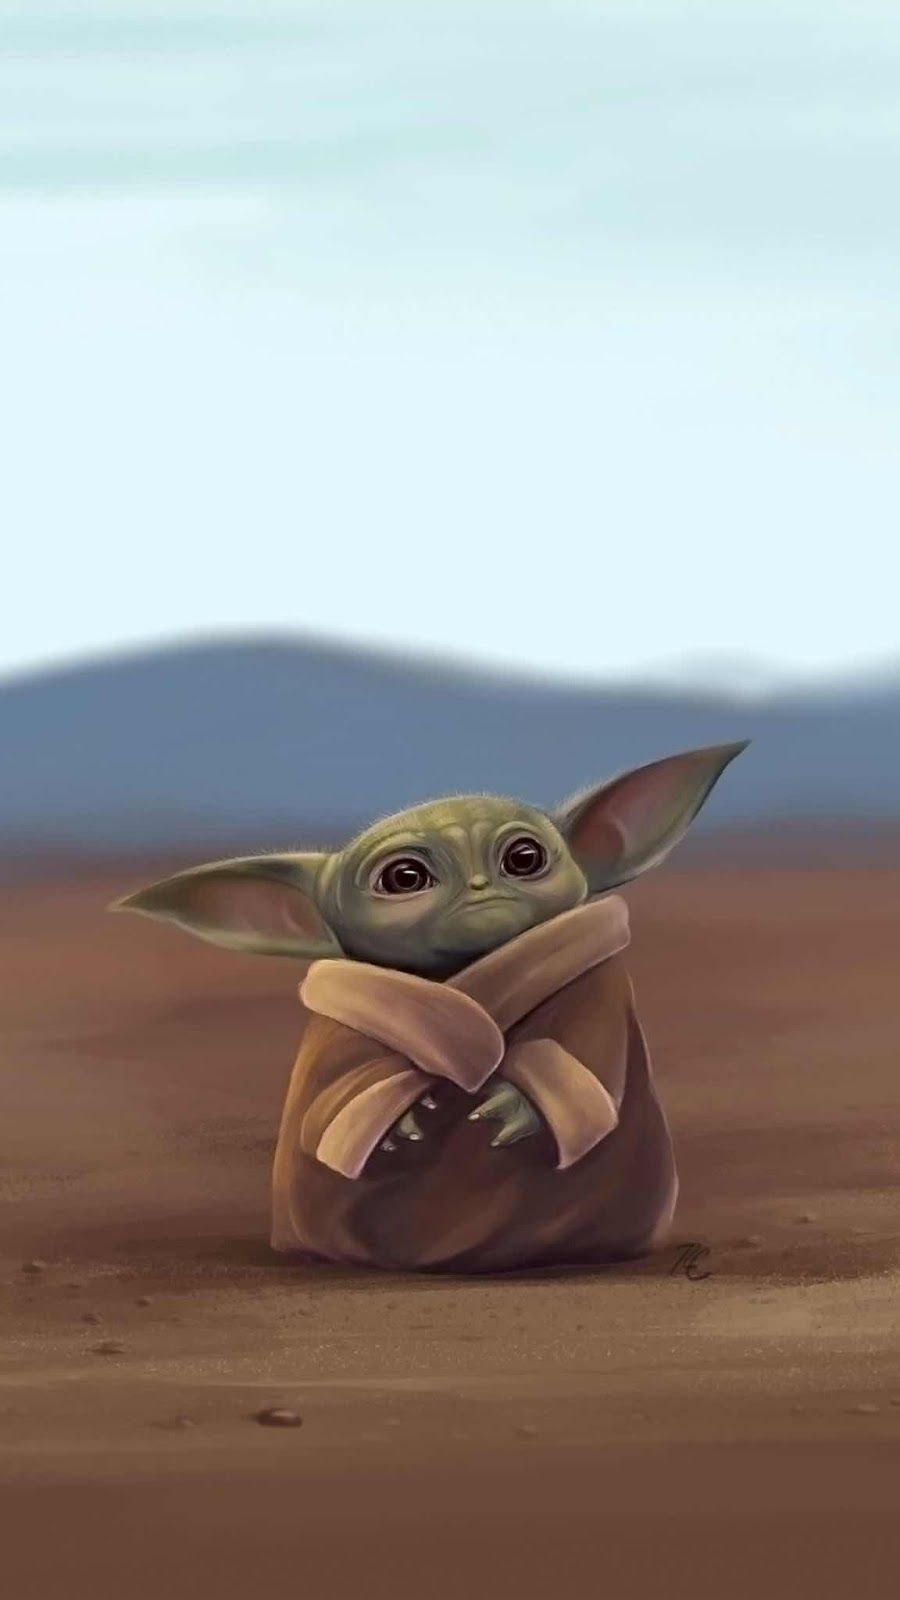 Iphone And Android Wallpapers Baby Yoda Wallpaper For Iphone And Android Yoda Wallpaper Yoda Art Yoda Images